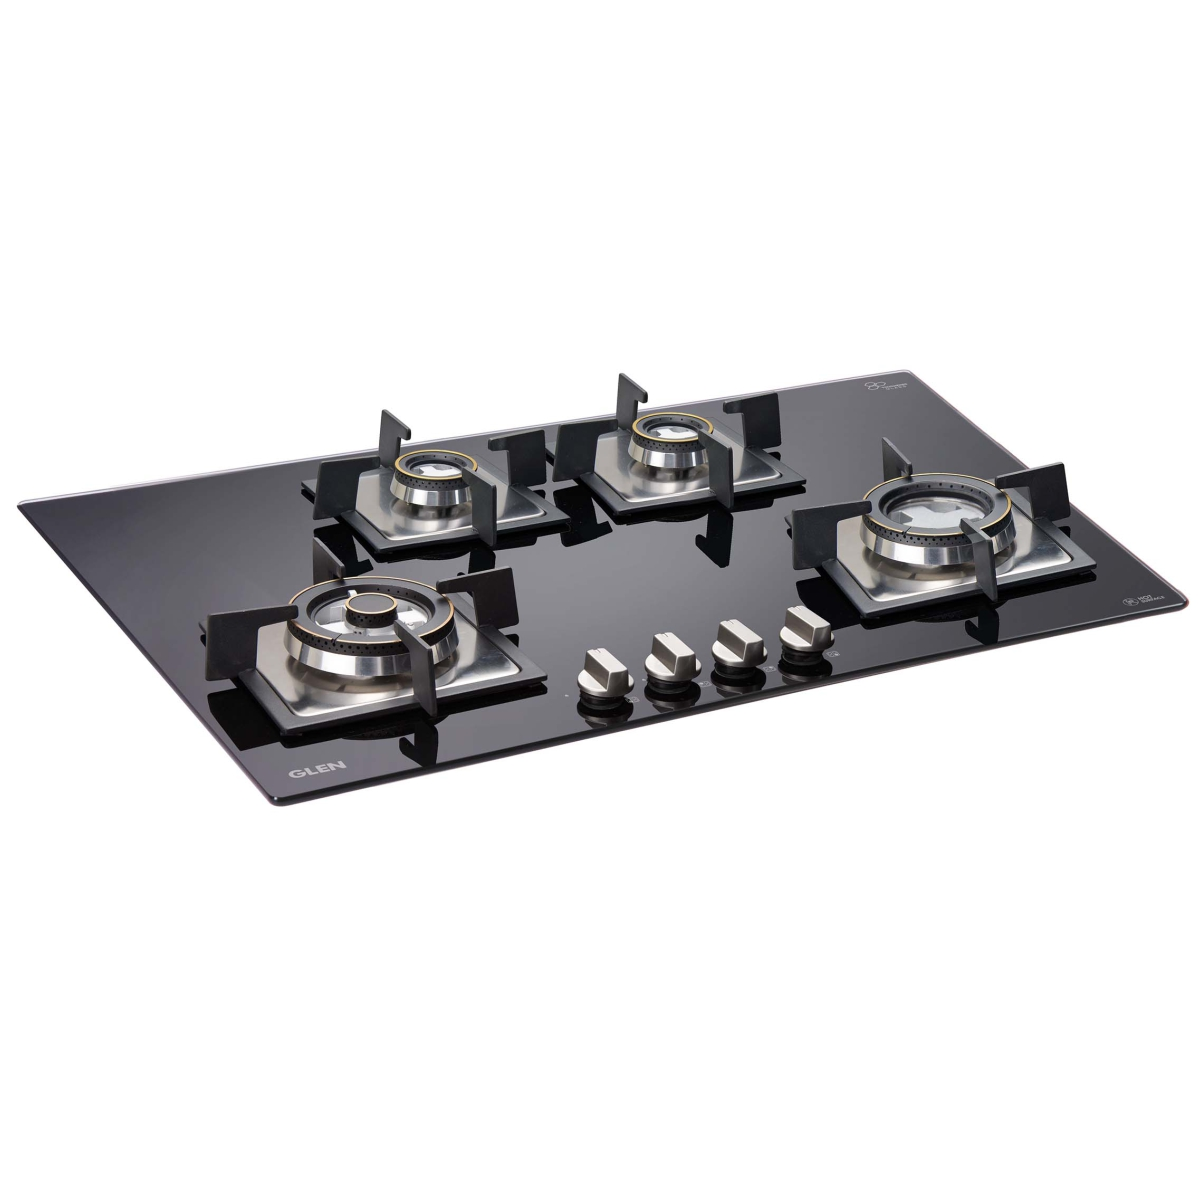 Glen 4 Burner Built In Glass Hob 1074 SQ Double Brass Triple Ring Burner by Glen